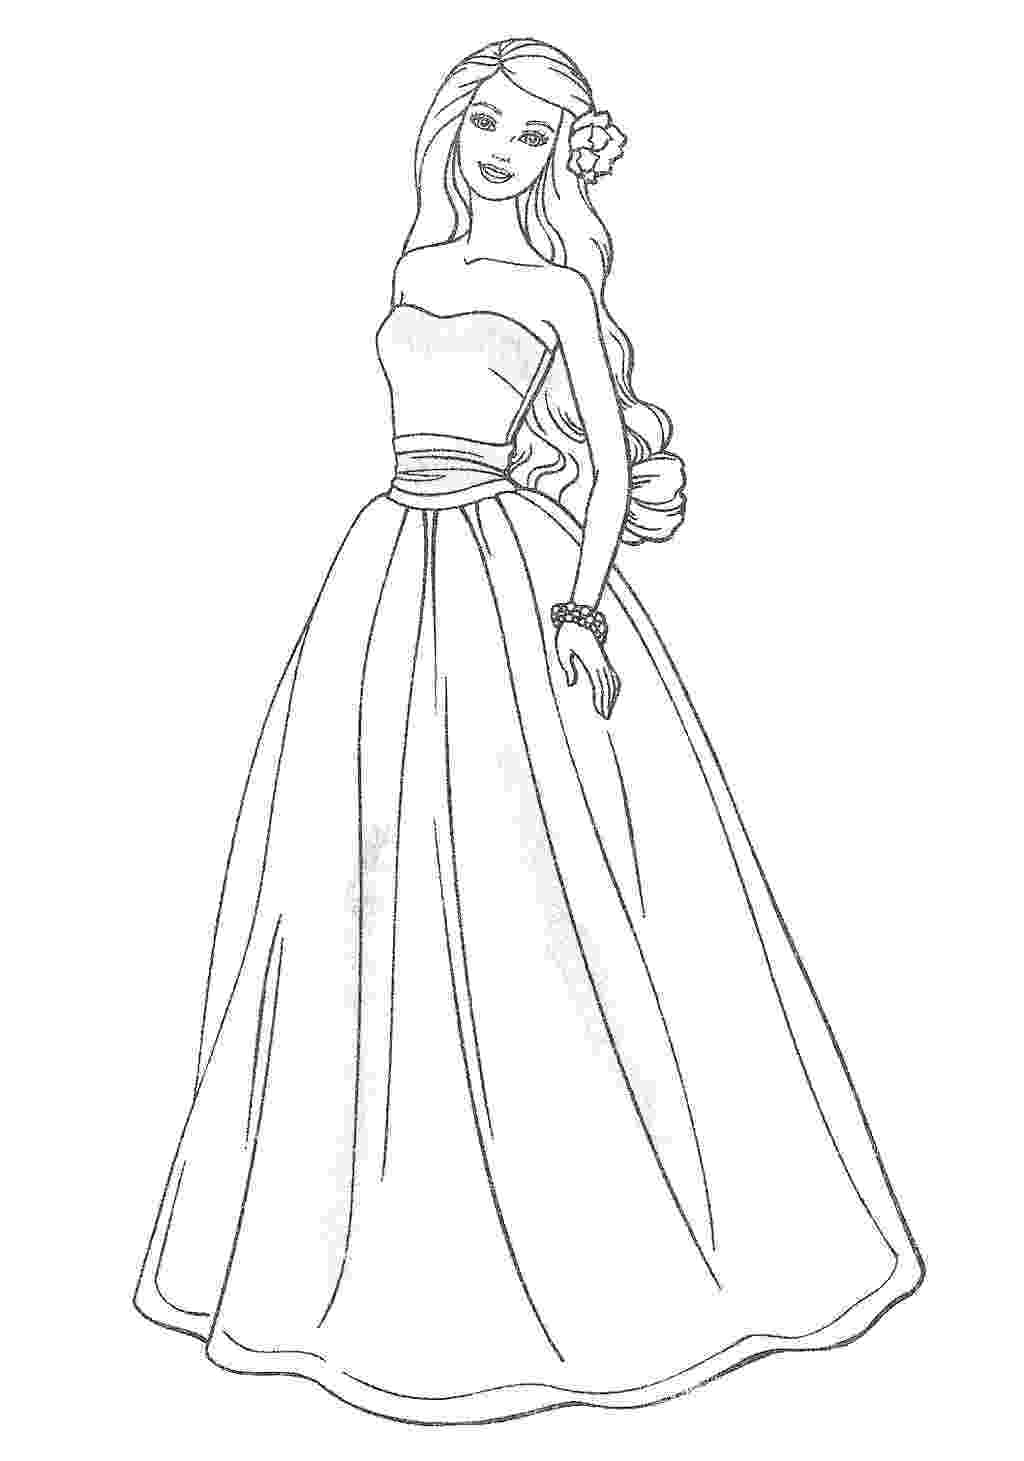 coloring page dress dress coloring pages to download and print for free page dress coloring